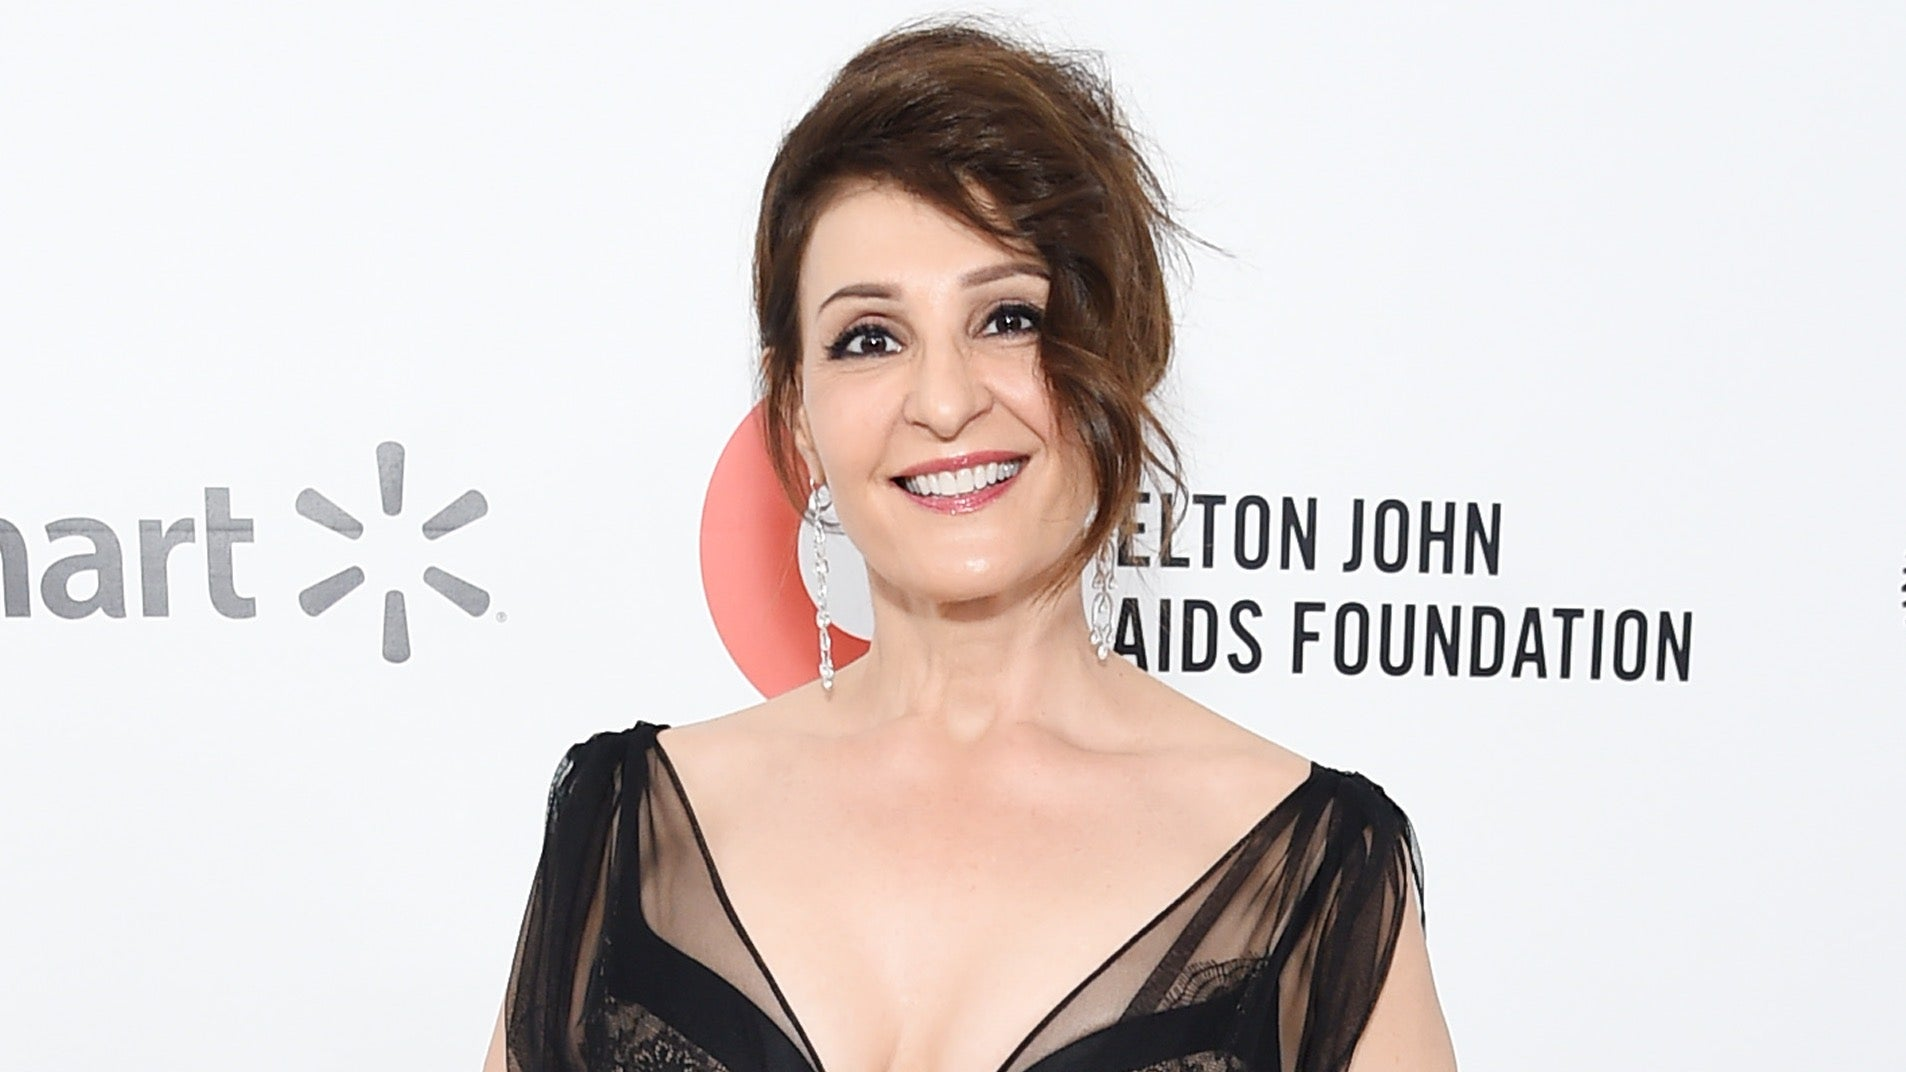 Nia Vardalos attends the 28th Annual Elton John AIDS Foundation Academy Awards Viewing Party